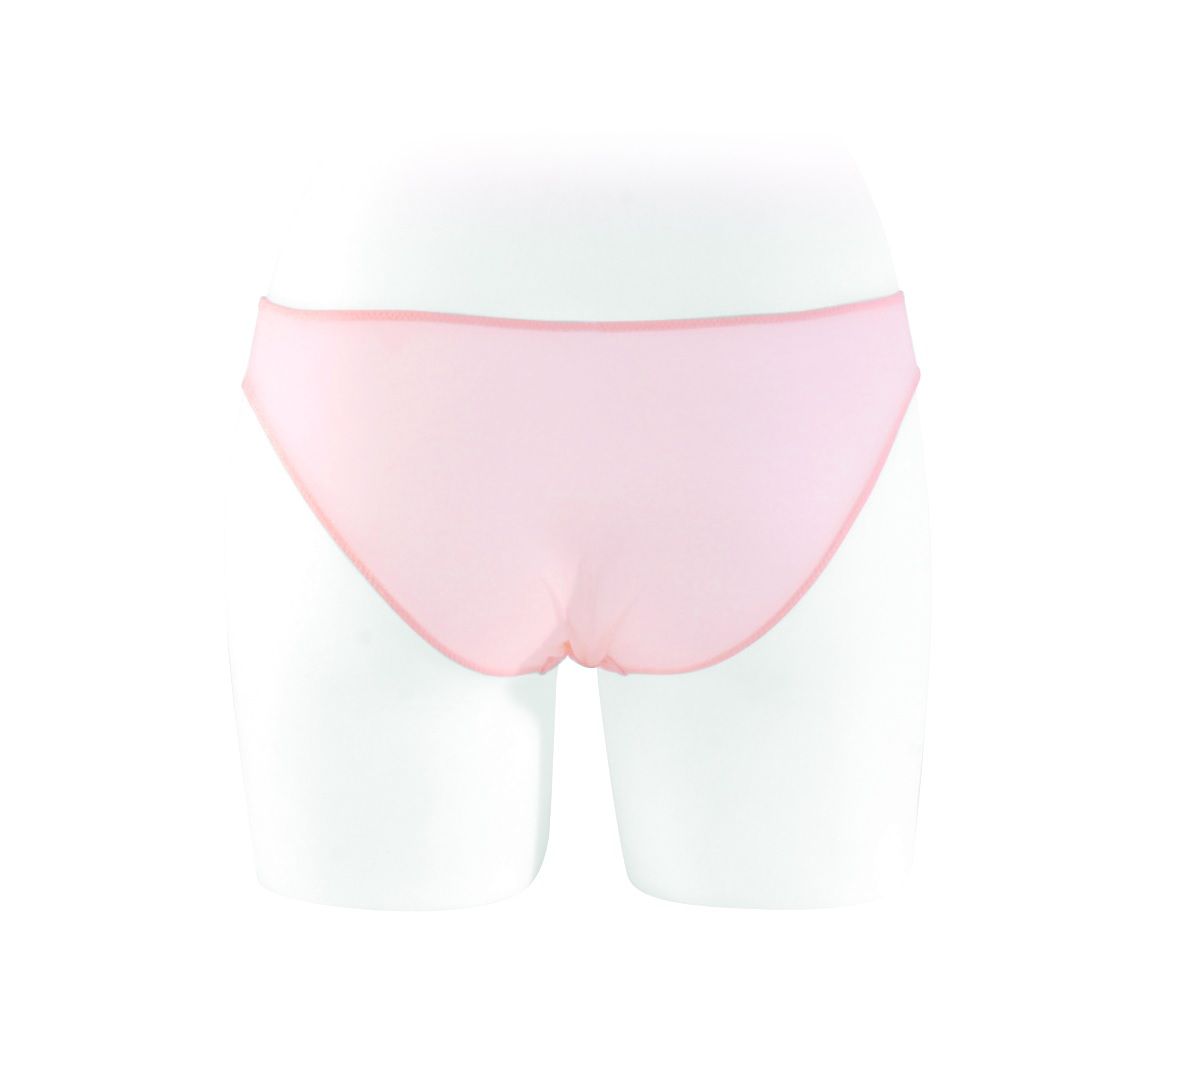 Maison Close kalhotky / Masion Close panties